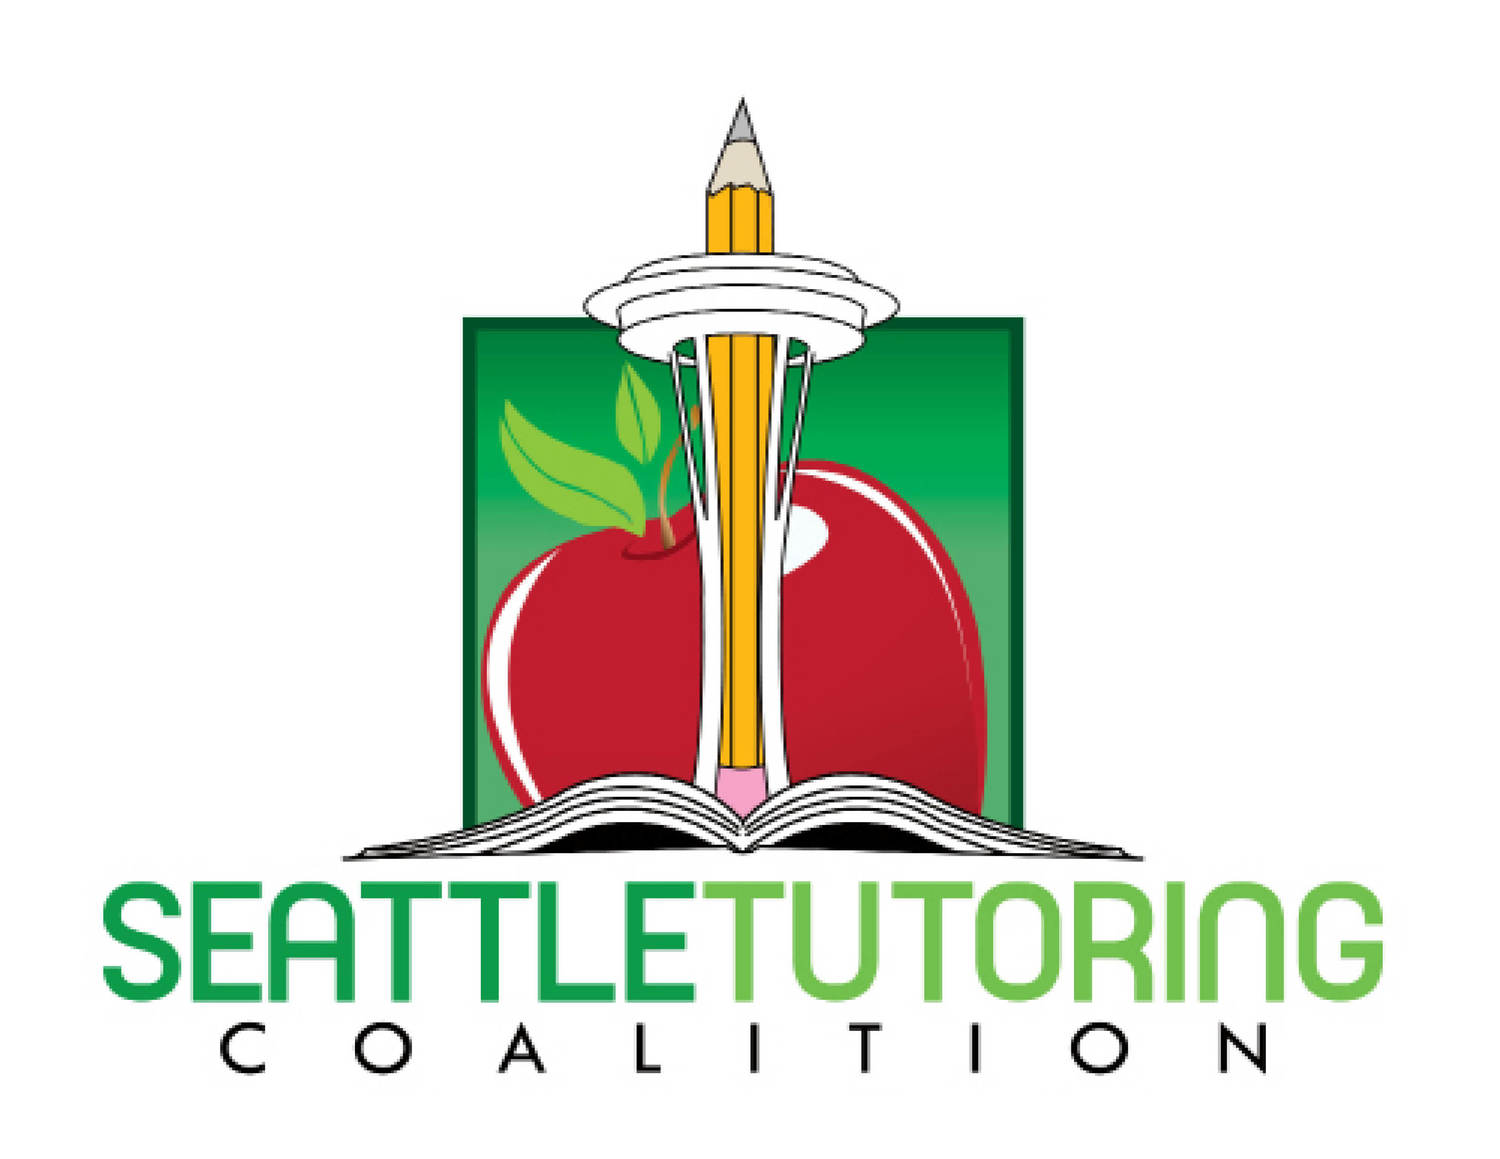 Seattle Tutoring Coalition